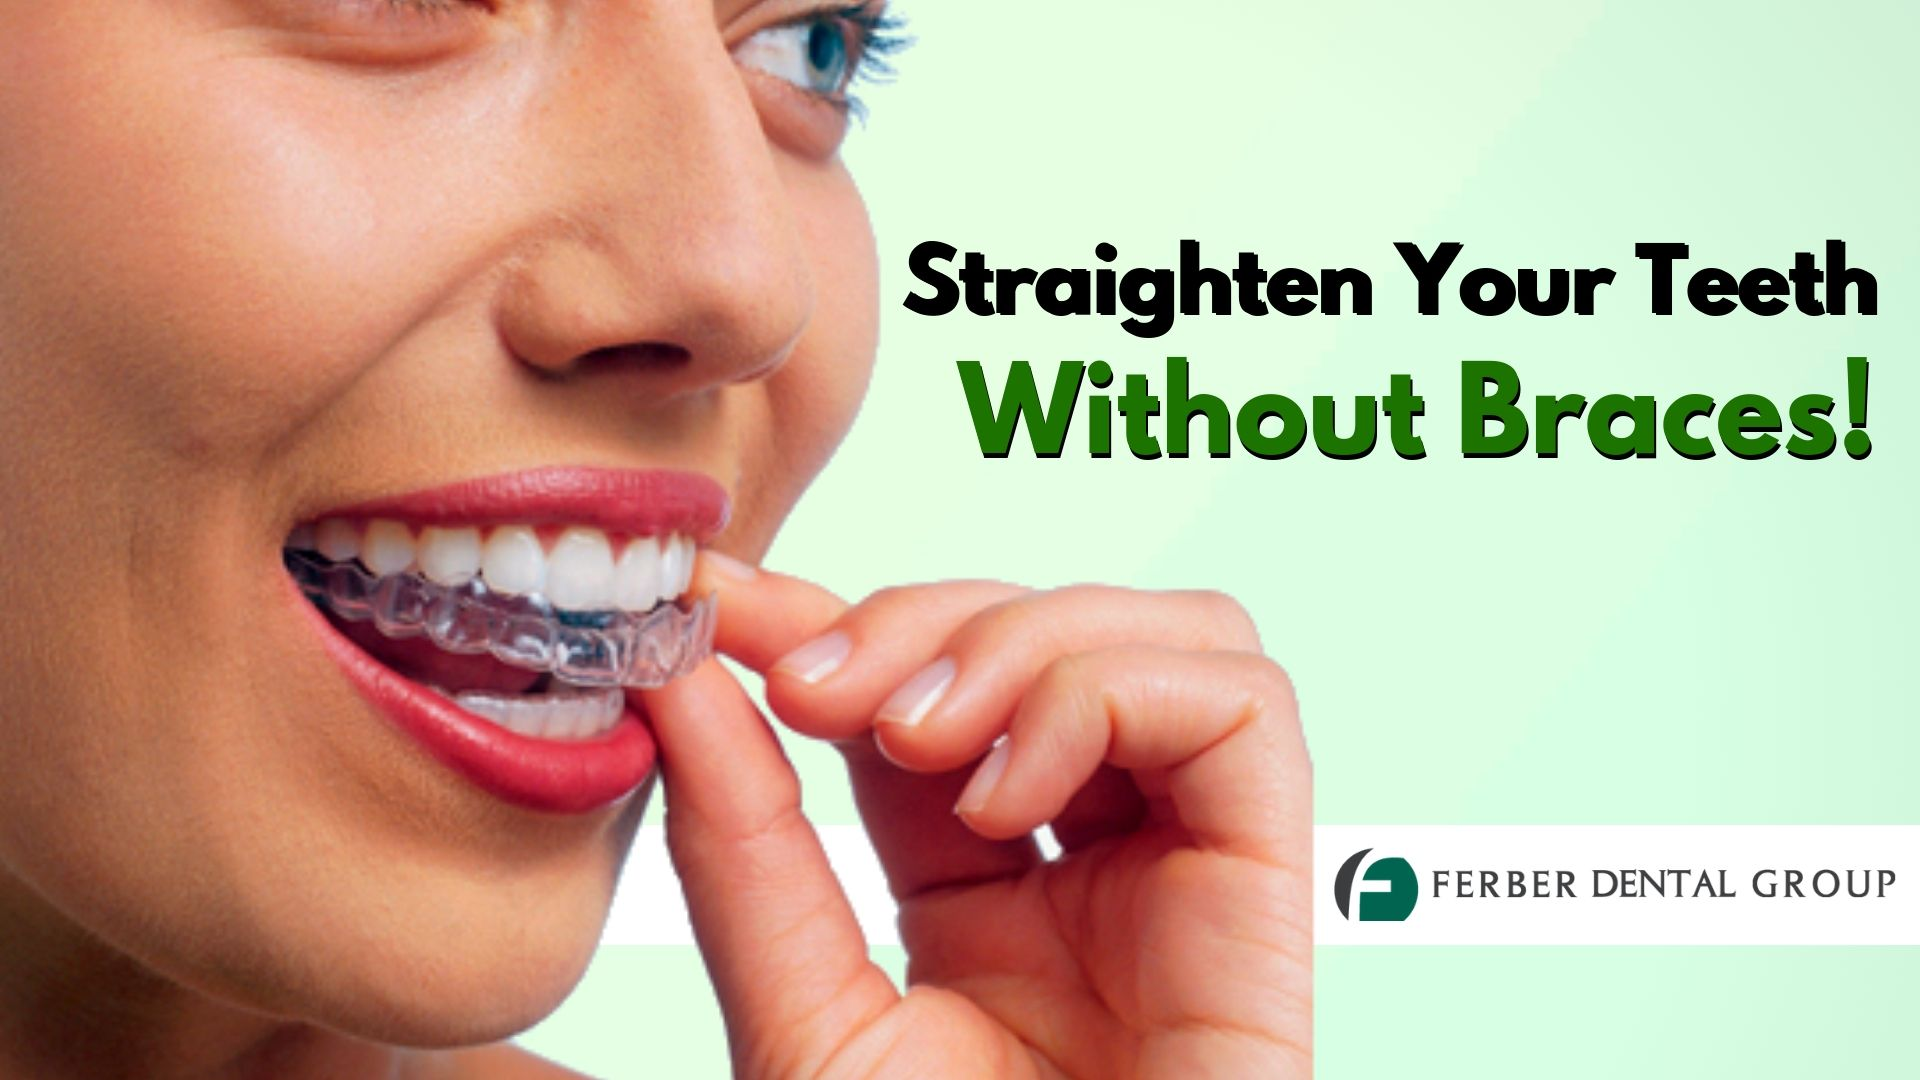 Clear braces ferber dental group invisible teeth